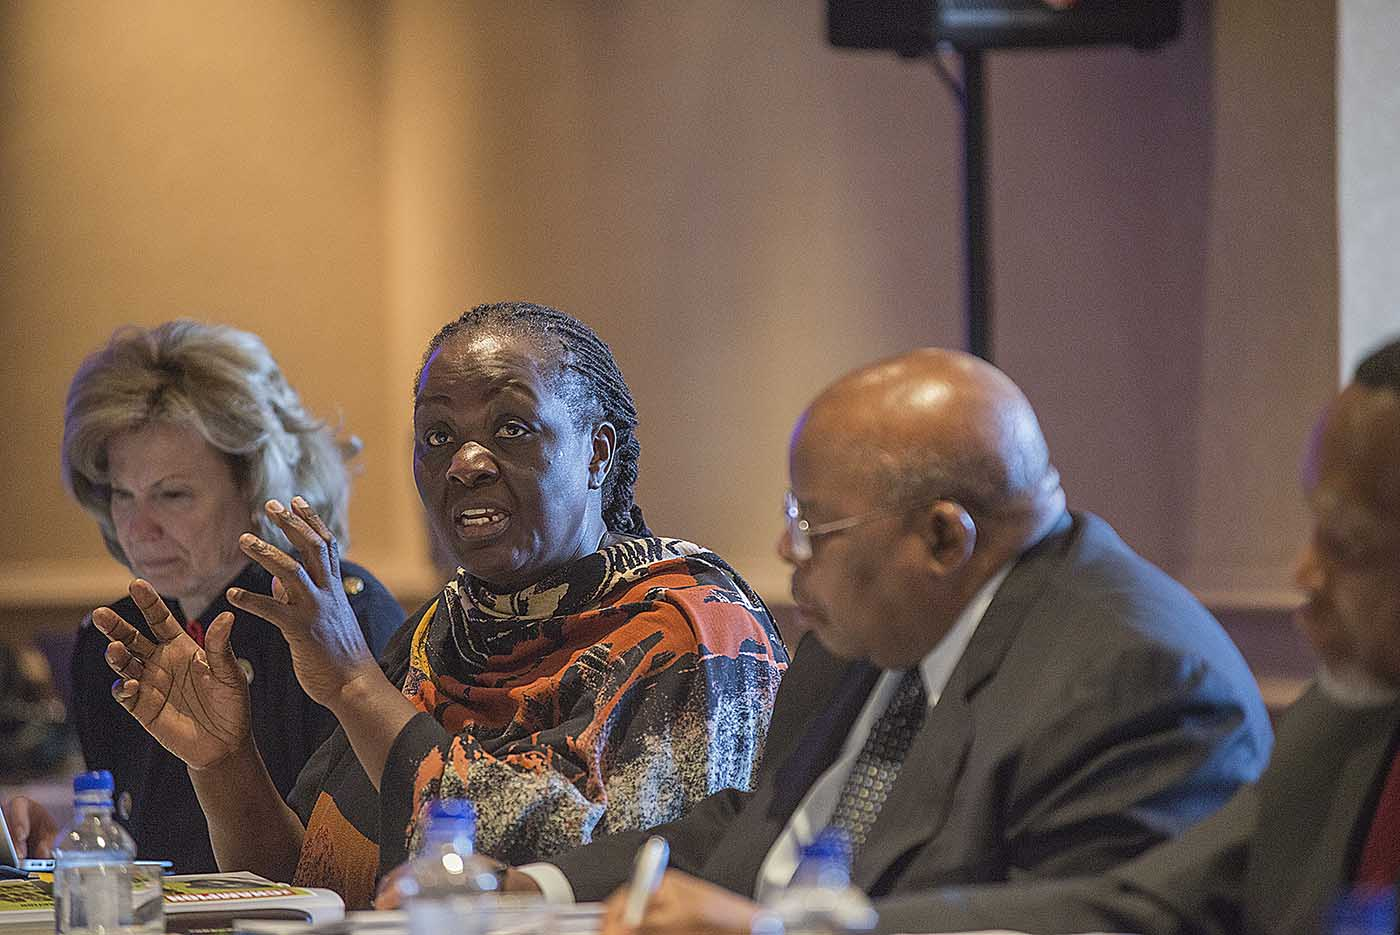 Former Vice-President of Uganda, Speciosa Wandira at the board meeting of the Champions.